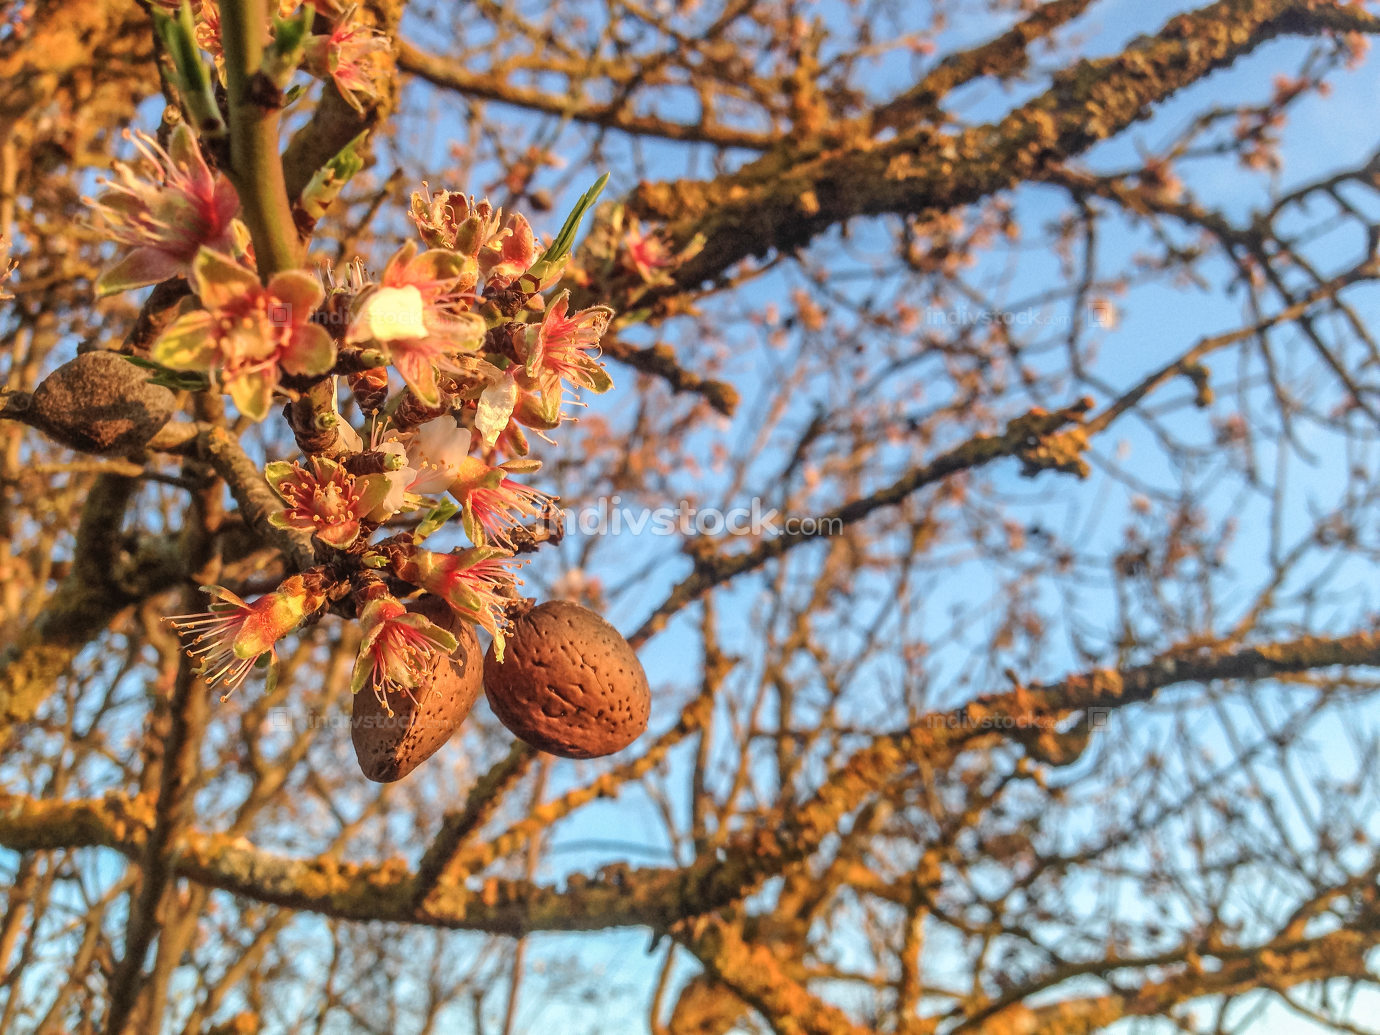 Almonds and flowers in the same tree branch